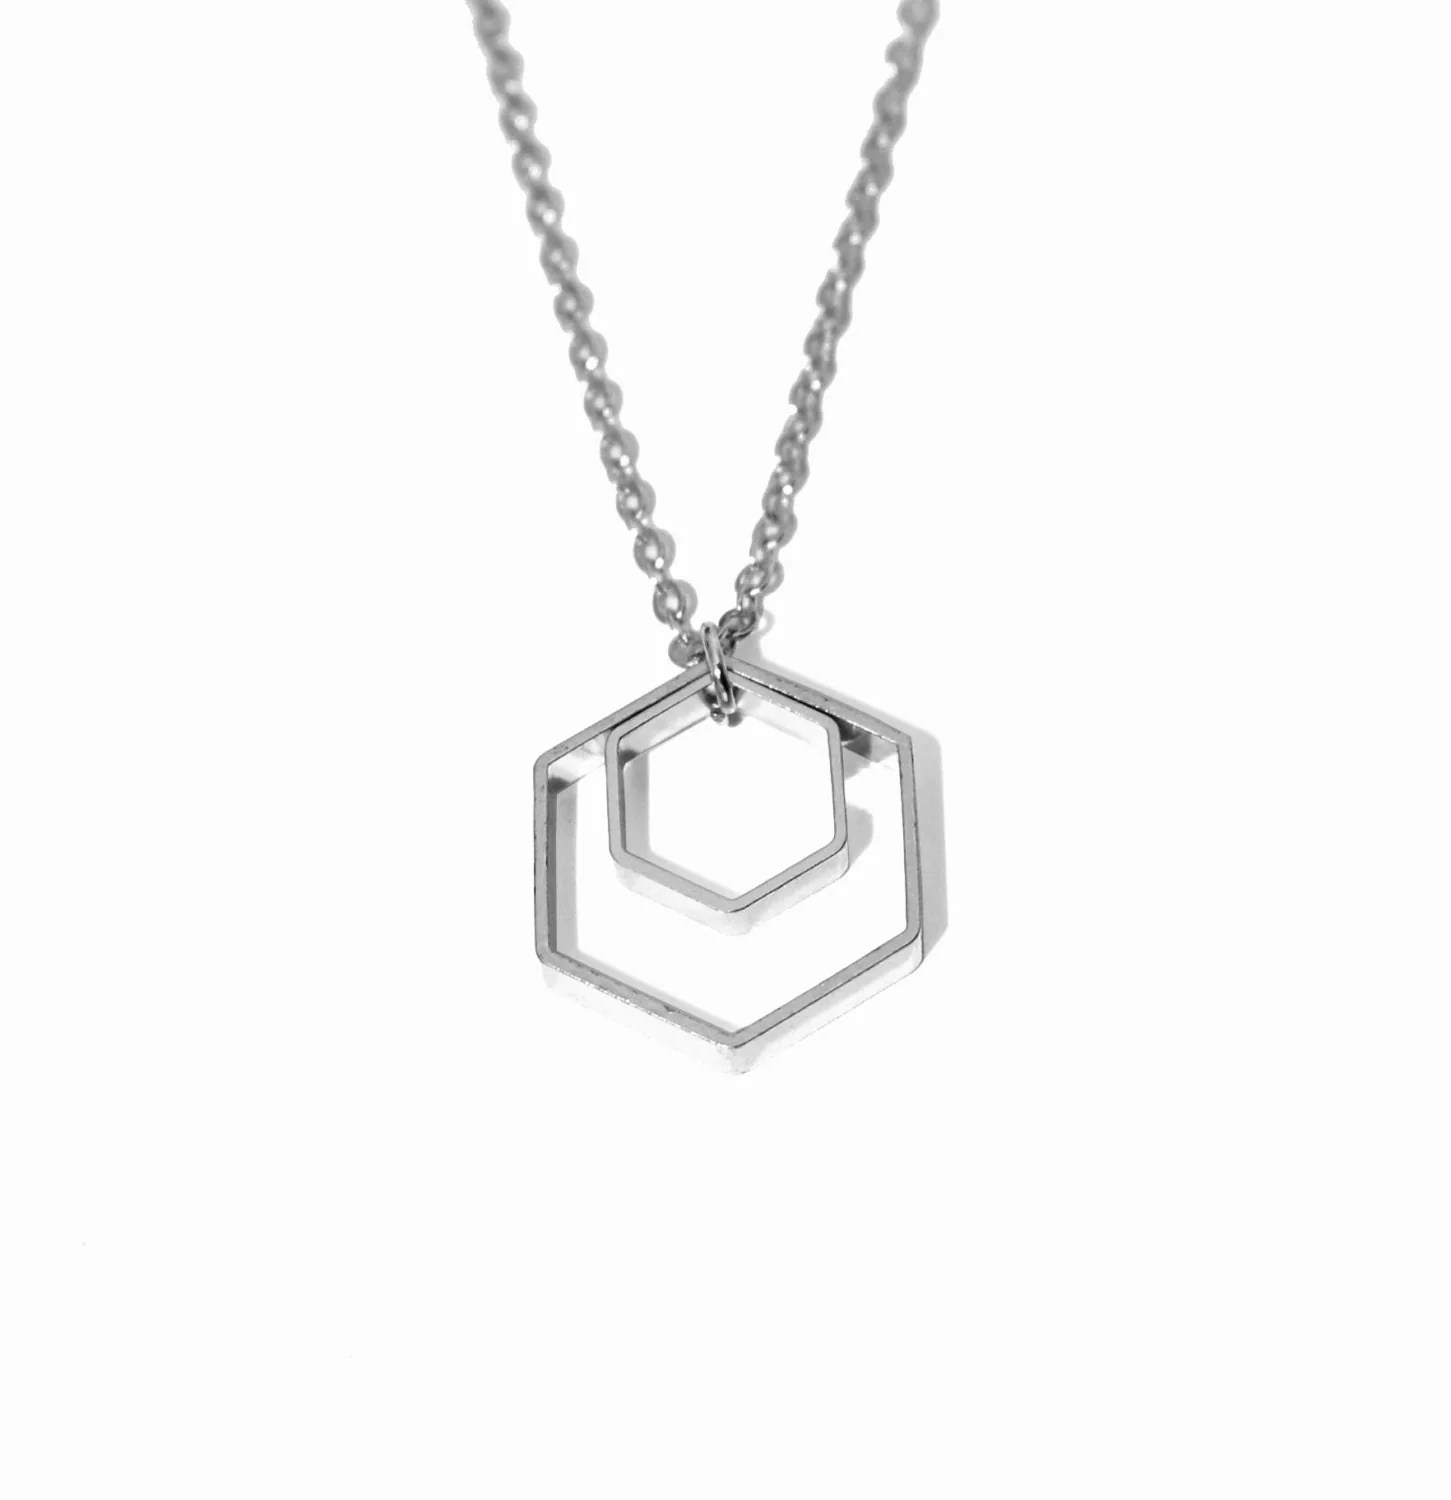 Silver Honeycomb Necklace Hexagon Necklace Modern Geometric